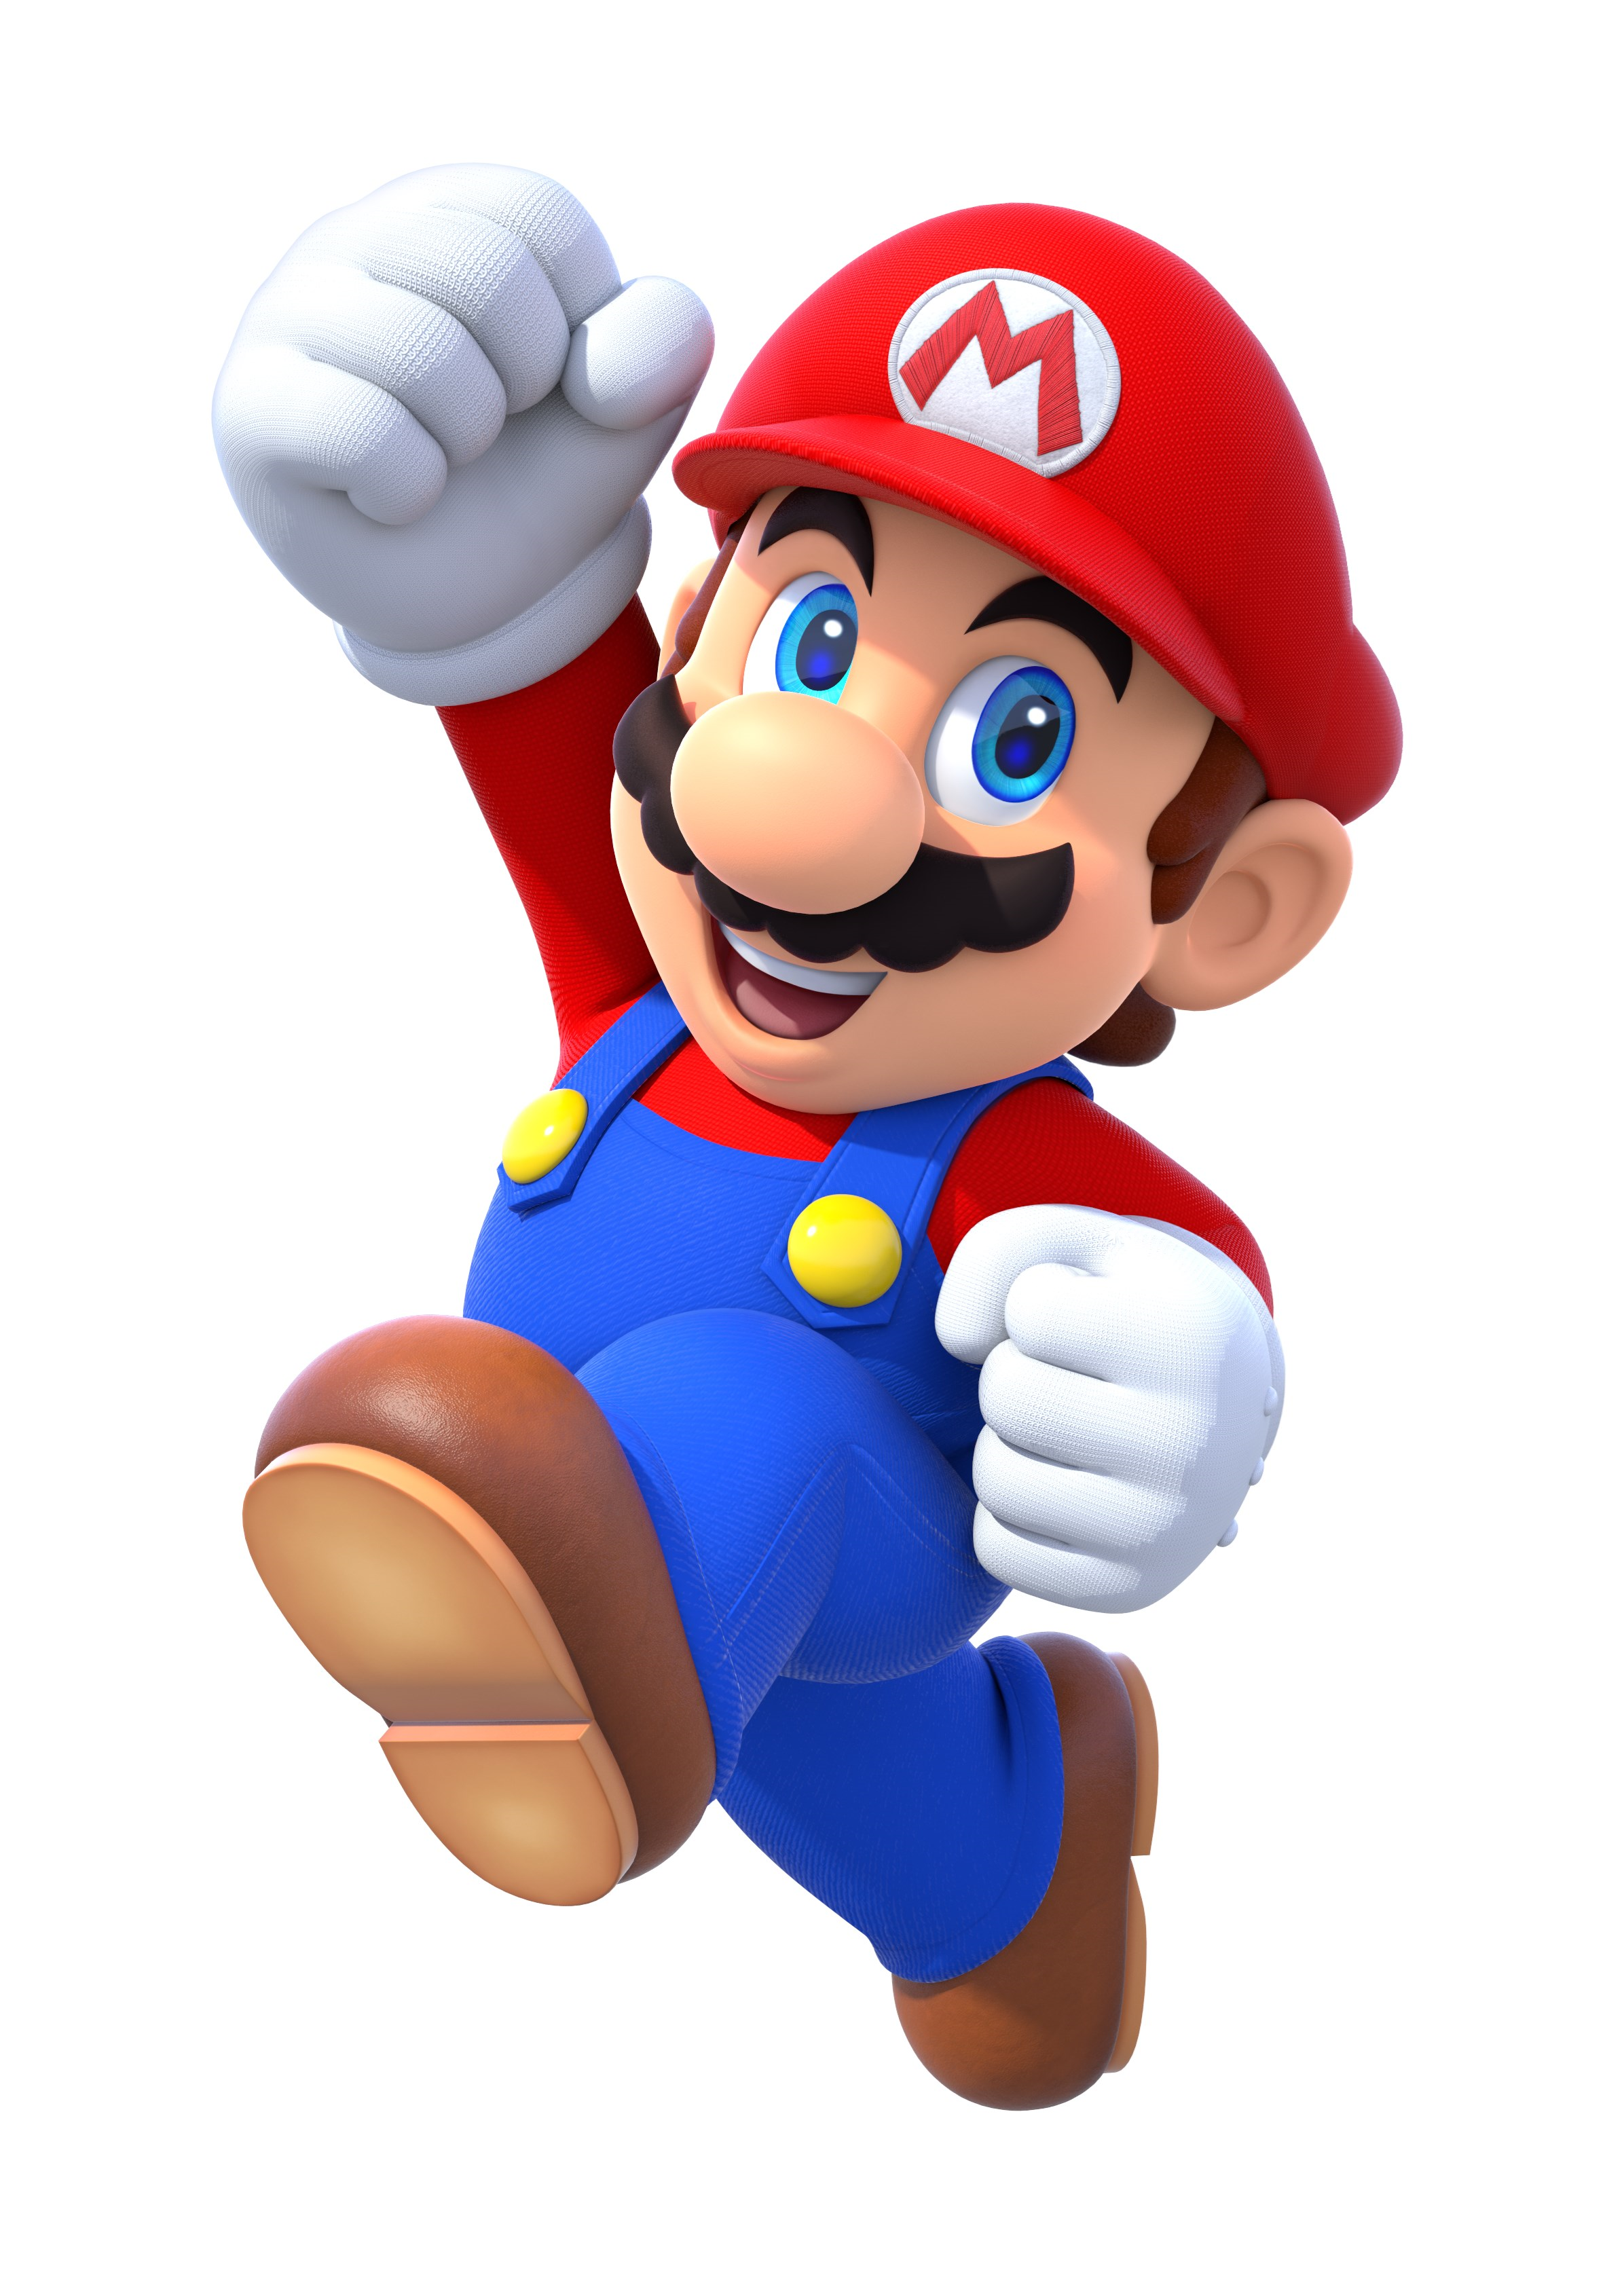 Rush Toy Star Play Bros Mario Party PNG Image